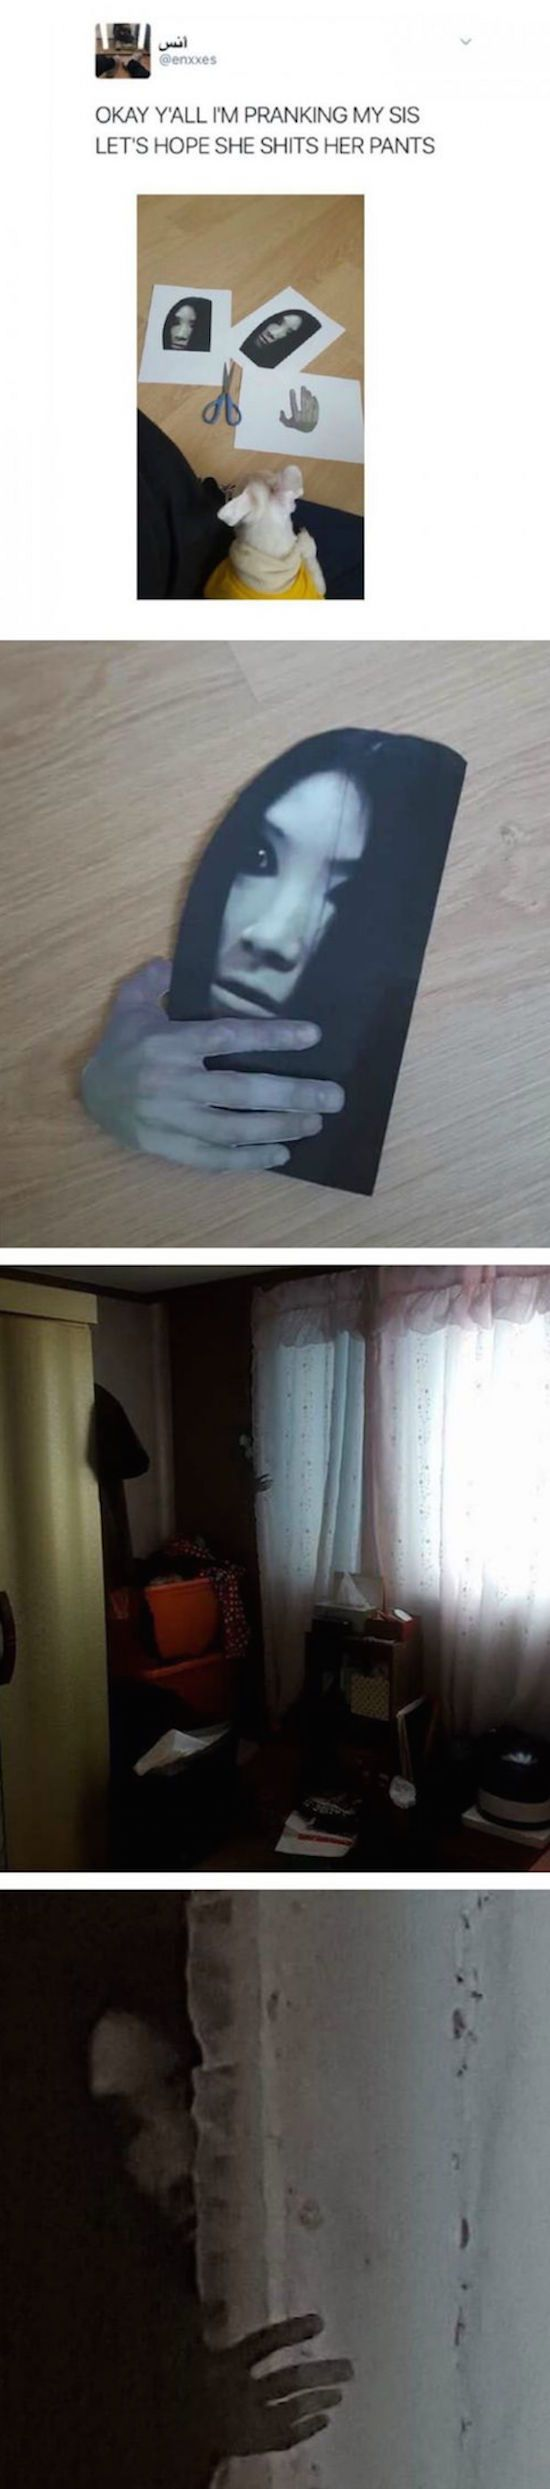 Best Funny Scary Pictures Ideas On Pinterest Creepy Funny - 21 terrifying situations imaginable